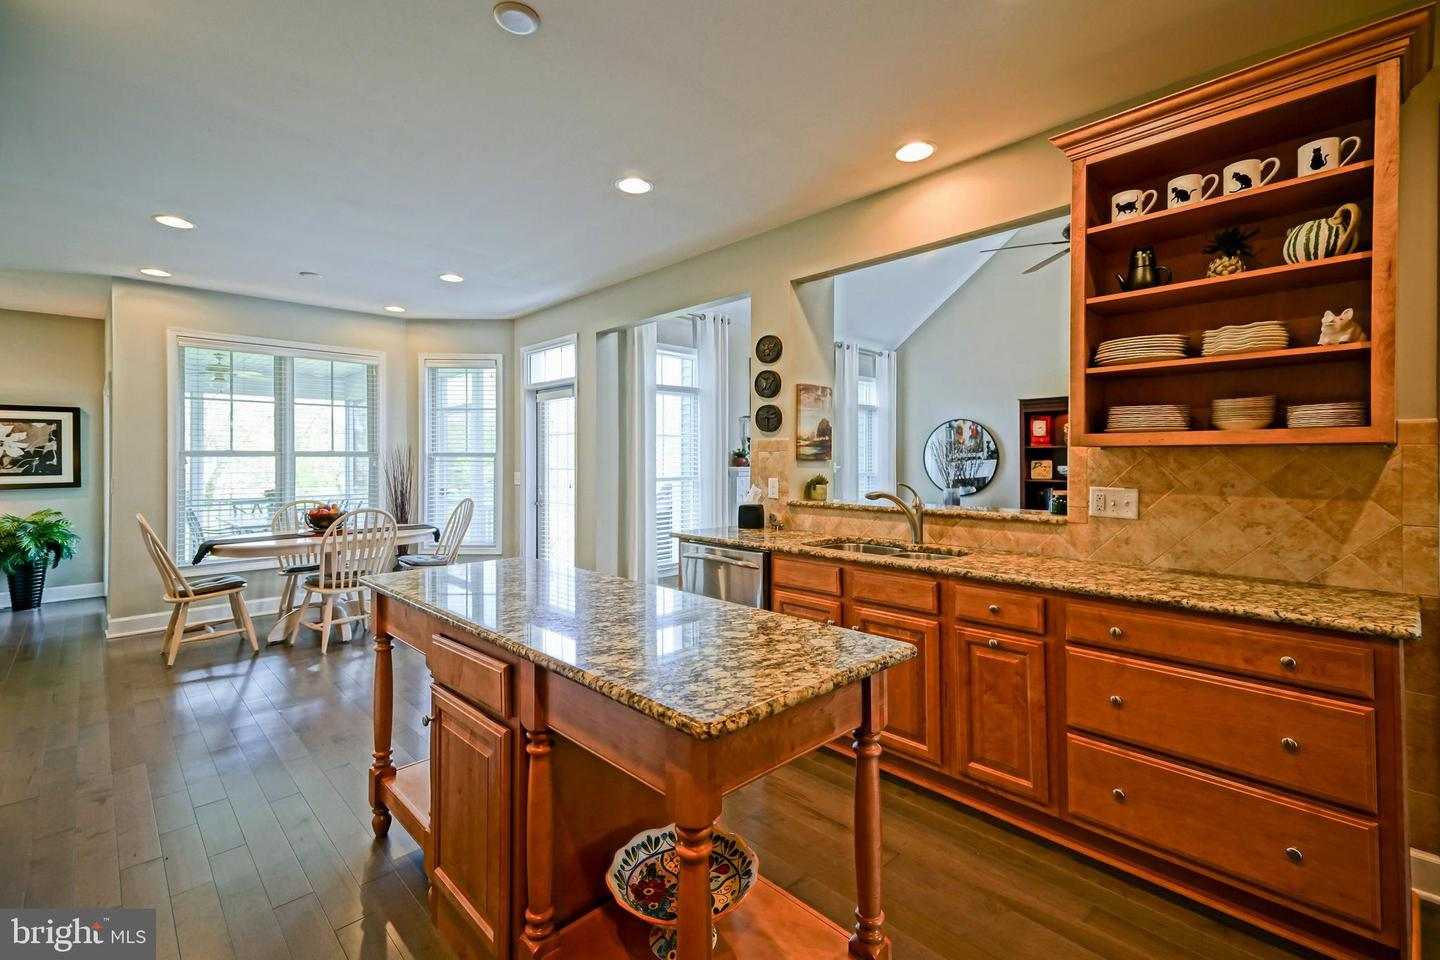 DESU139128-301667379344-2019-08-05-10-43-55 35222 Overfalls Dr N | Lewes, DE Real Estate For Sale | MLS# Desu139128  - Lee Ann Group